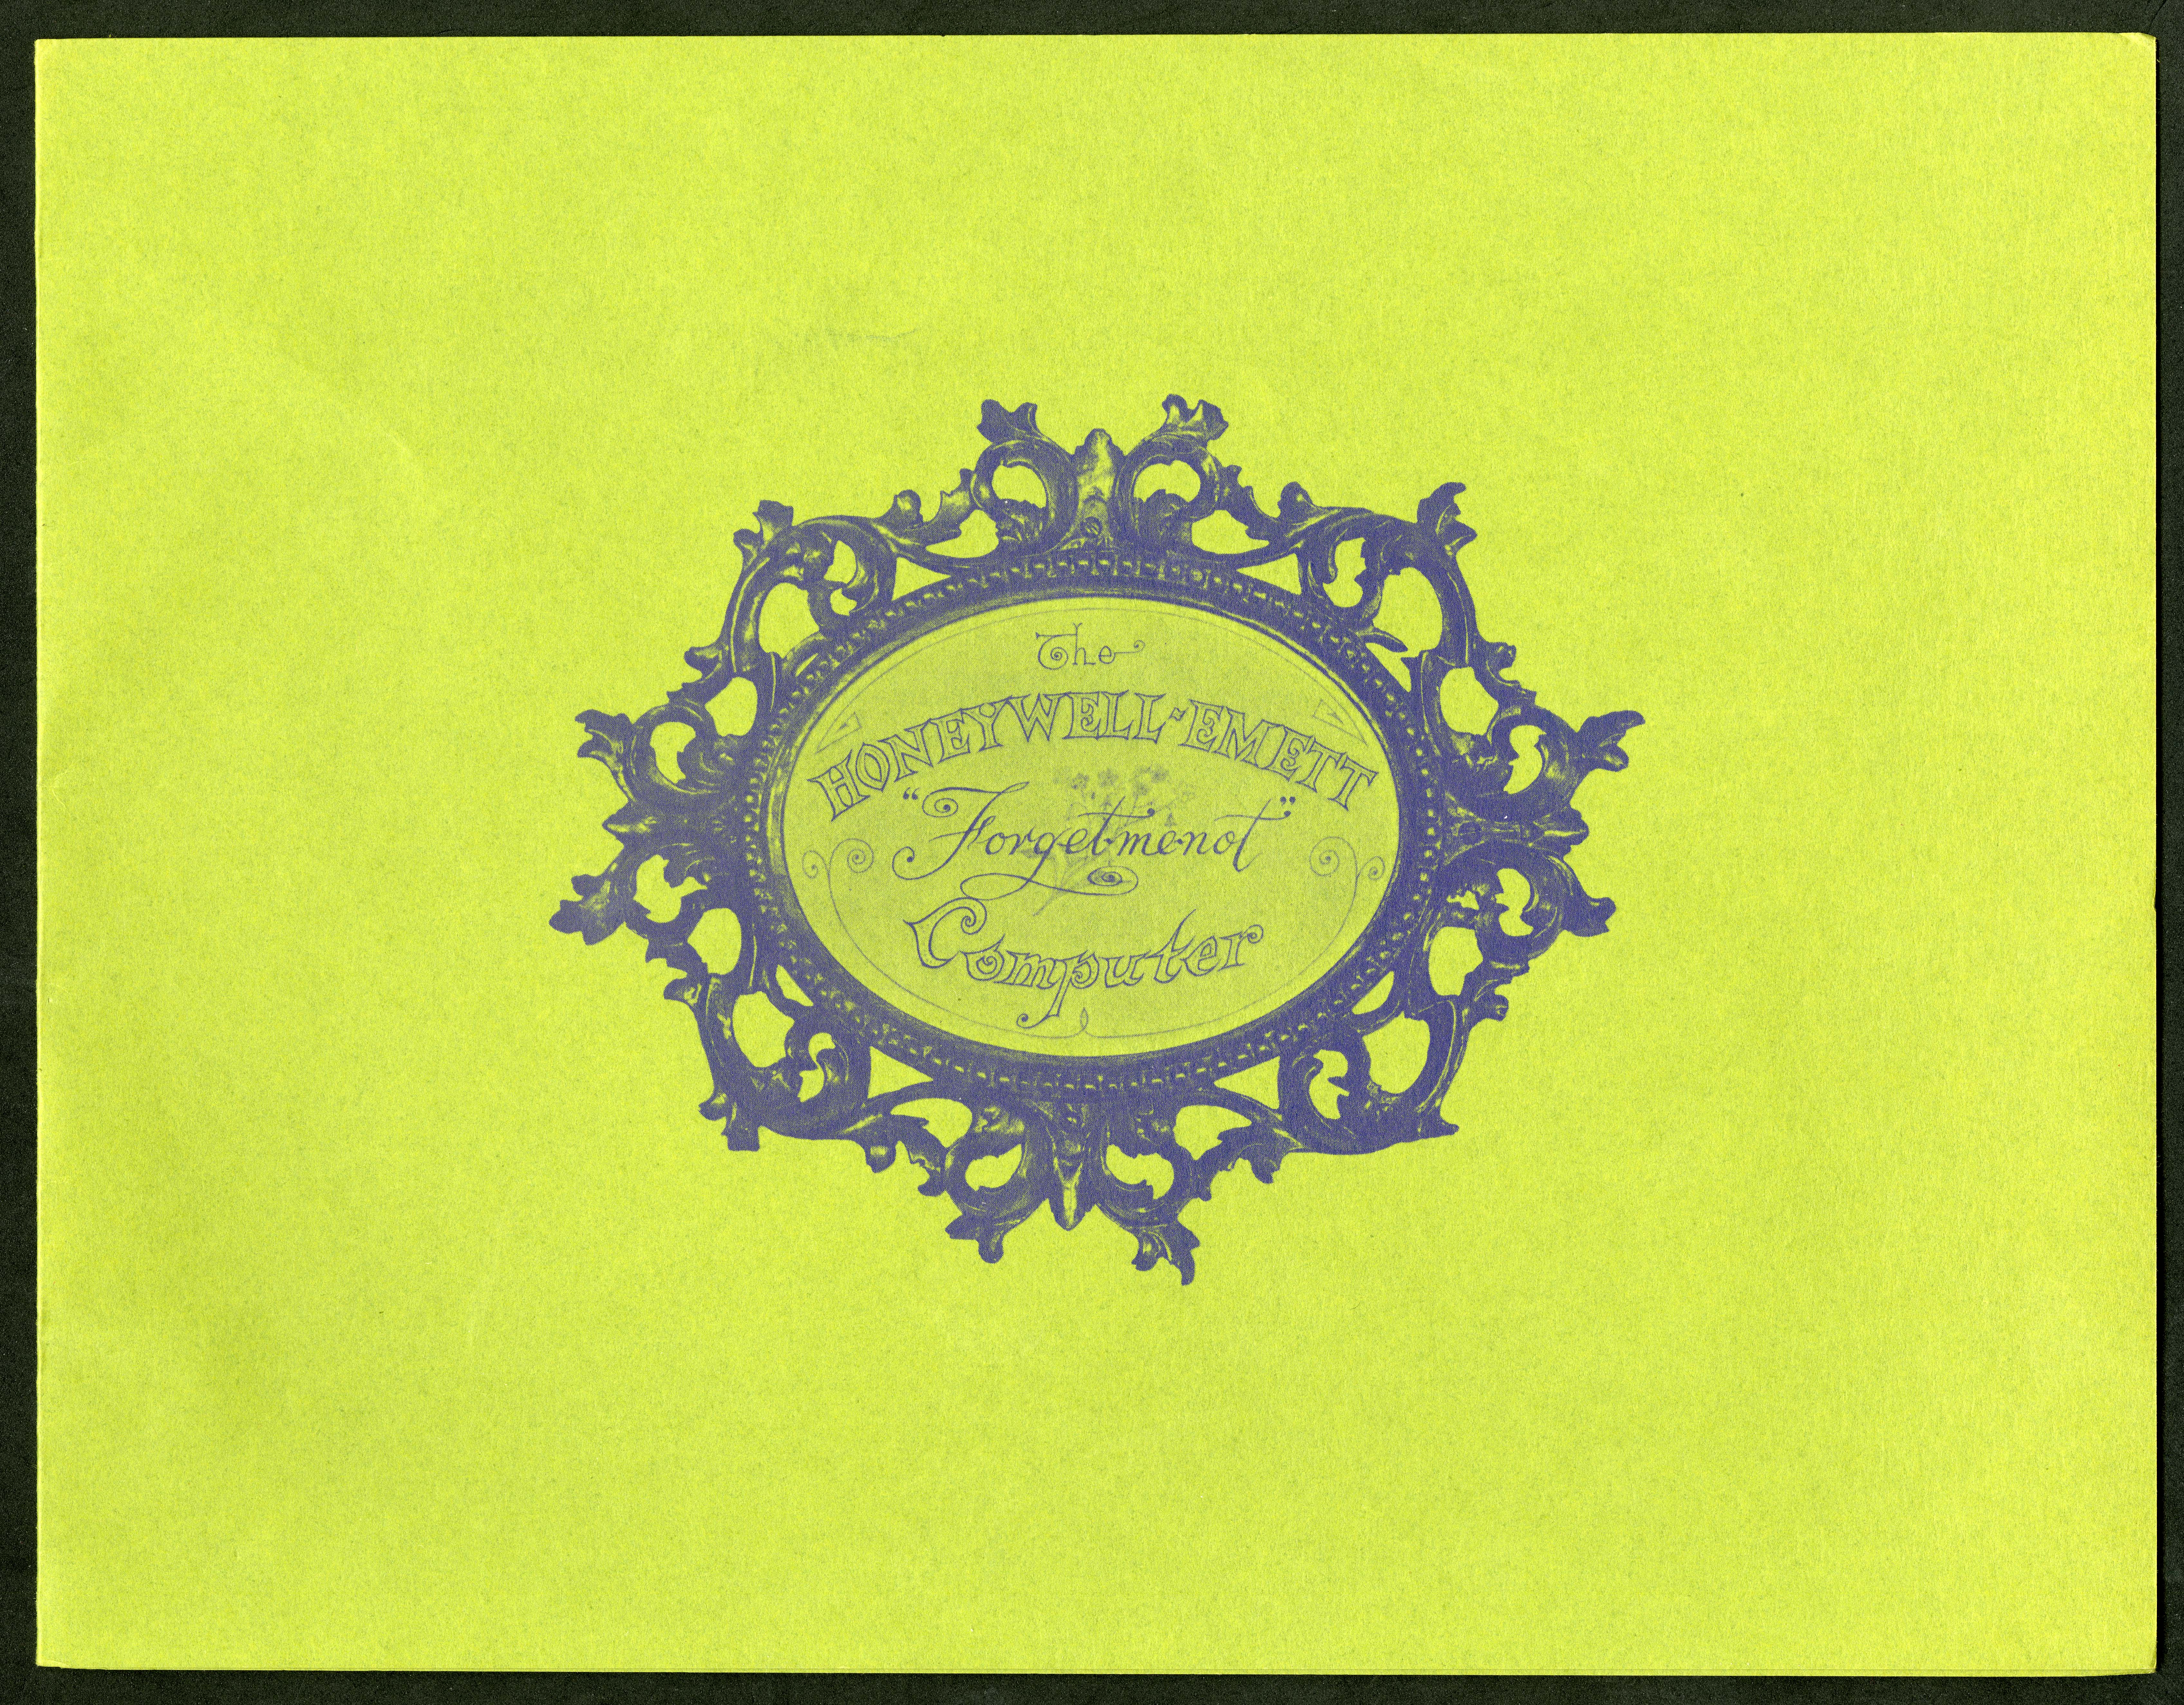 Scan of a lime green brochure cover, with the Honeywell logo in the center